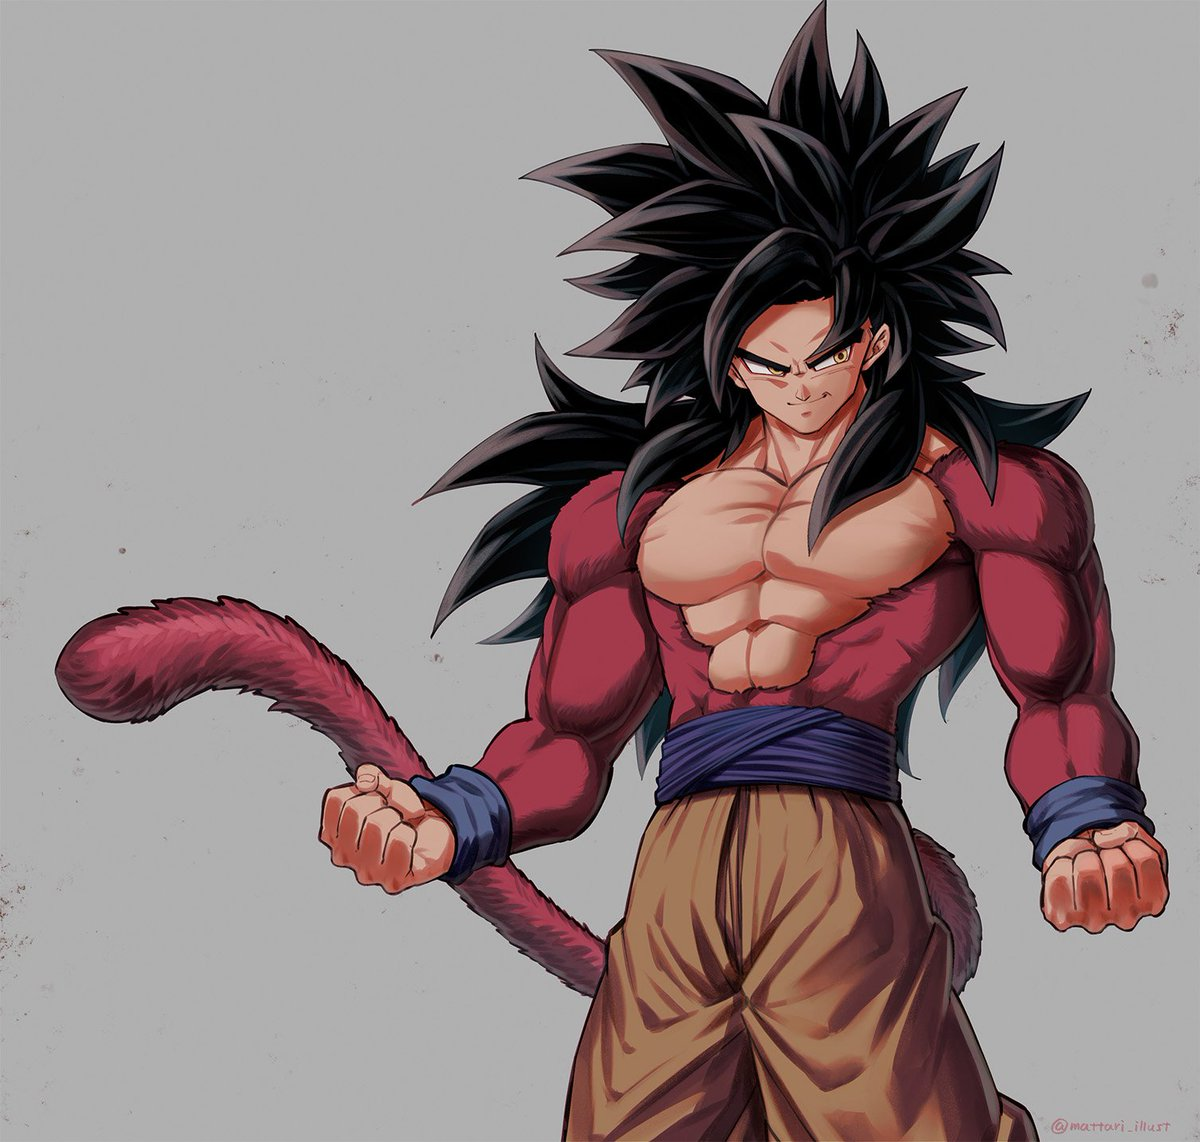 Images découvertes [Fanarts Dragon Ball] - Page 6 D8m05m2U0AAhuqO